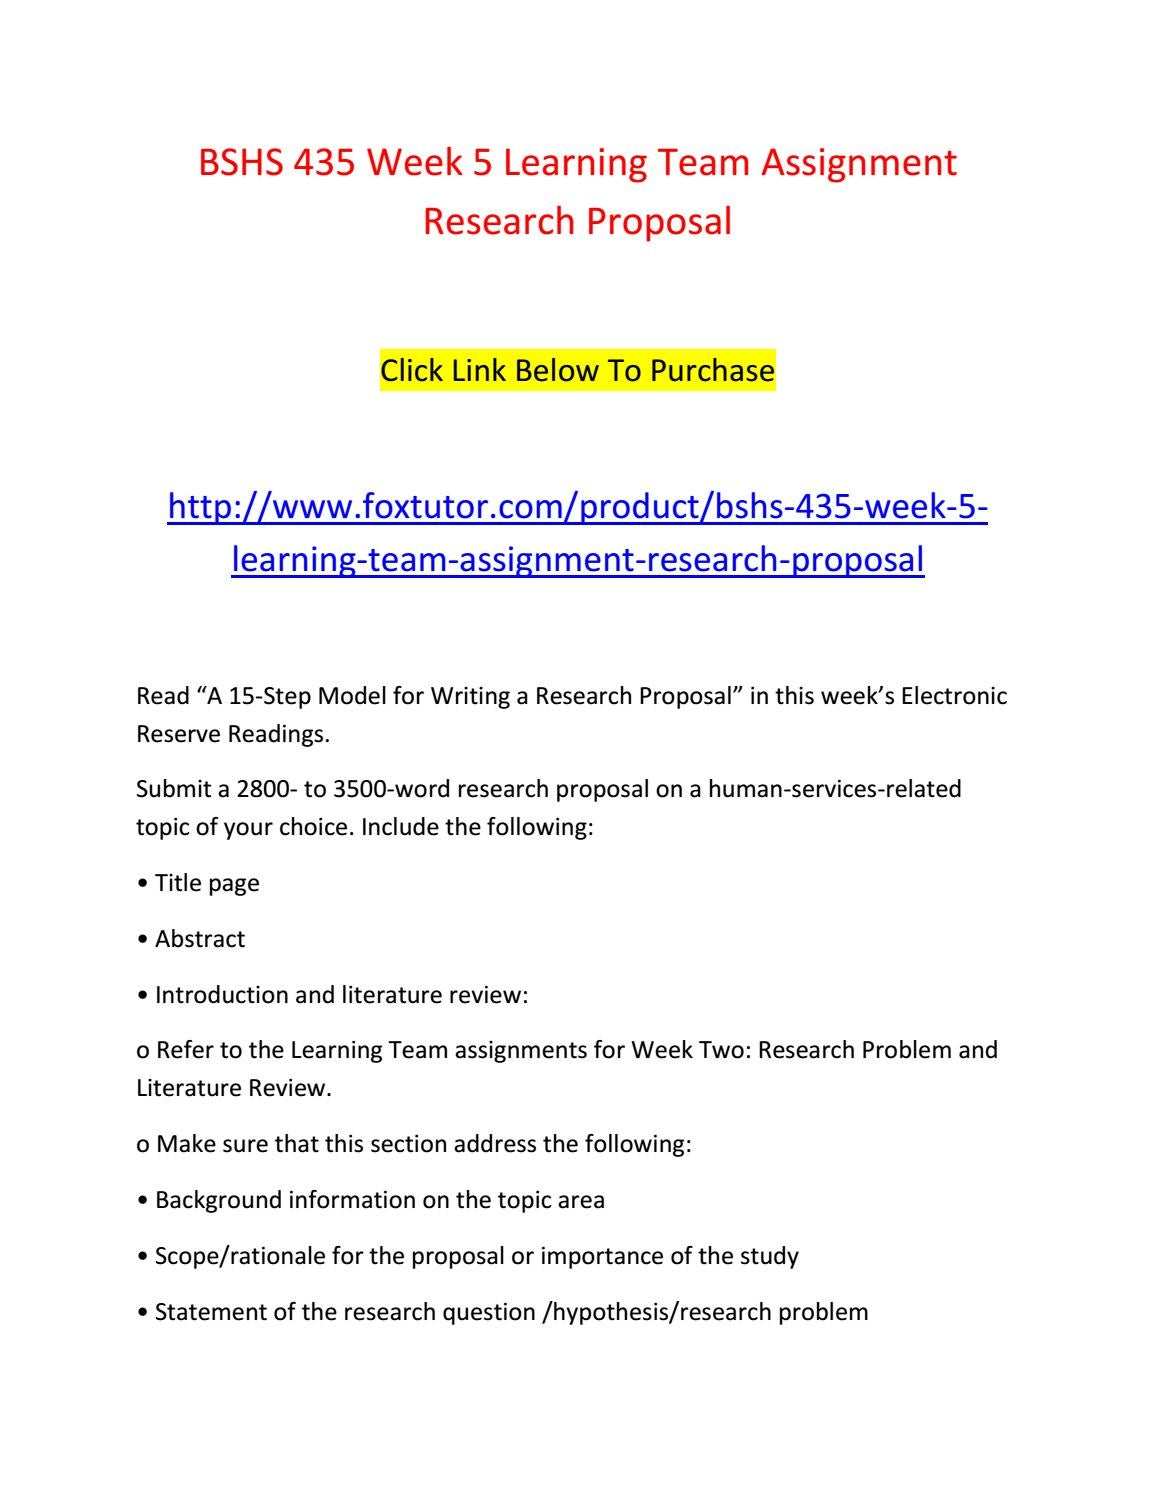 research proposal bshs 435